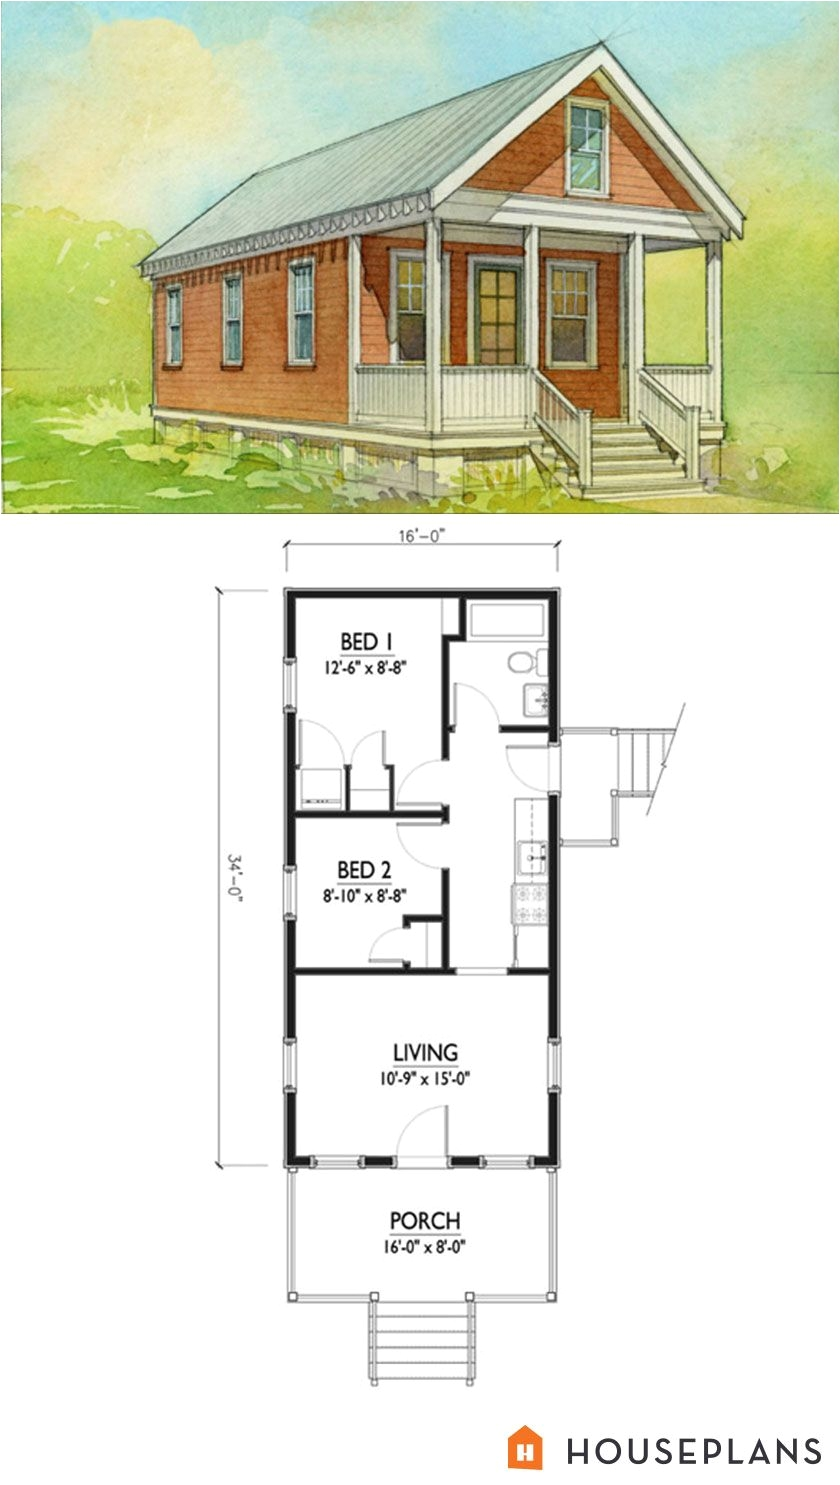 small katrina cottage house plan 500sft 2br 1 bath by marianne cusato houseplans plan 514 5